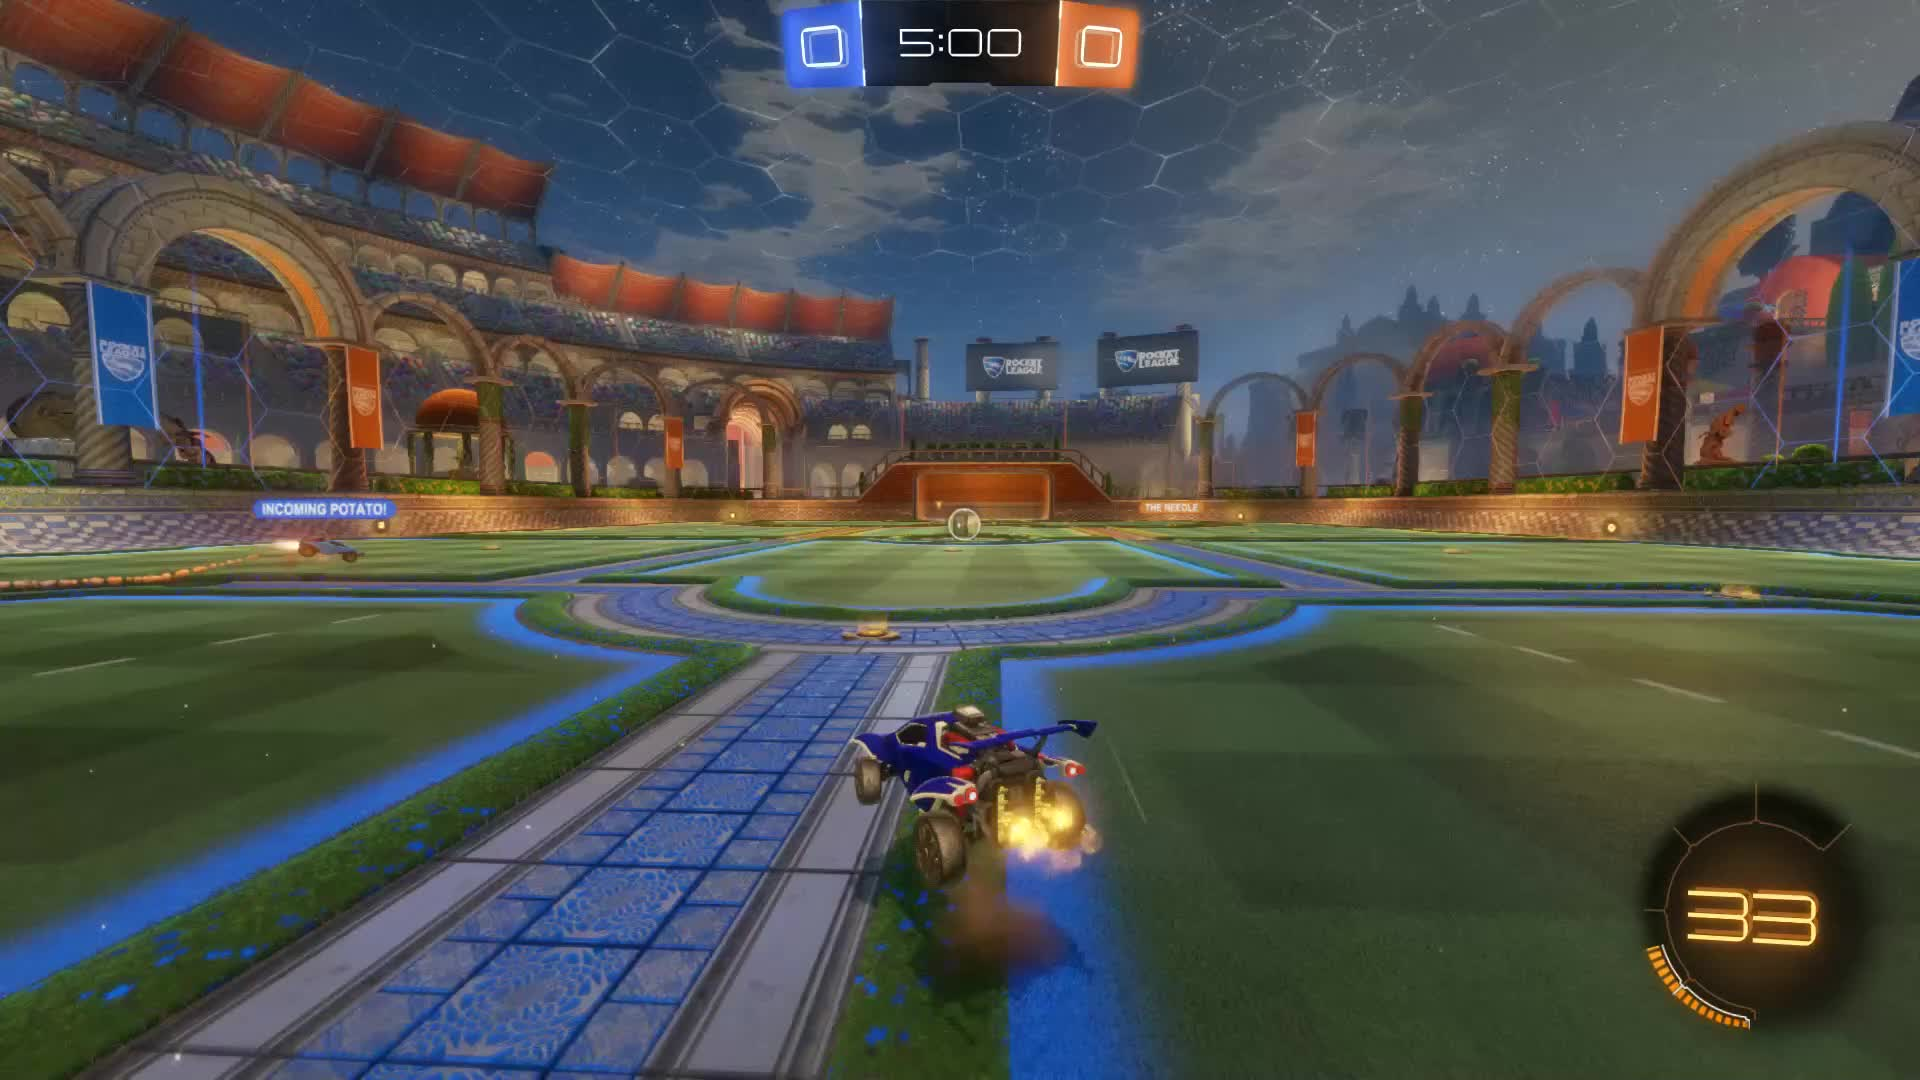 Gif Your Game, GifYourGame, Goal, Rocket League, RocketLeague, Who?, Goal 1: Who? GIFs